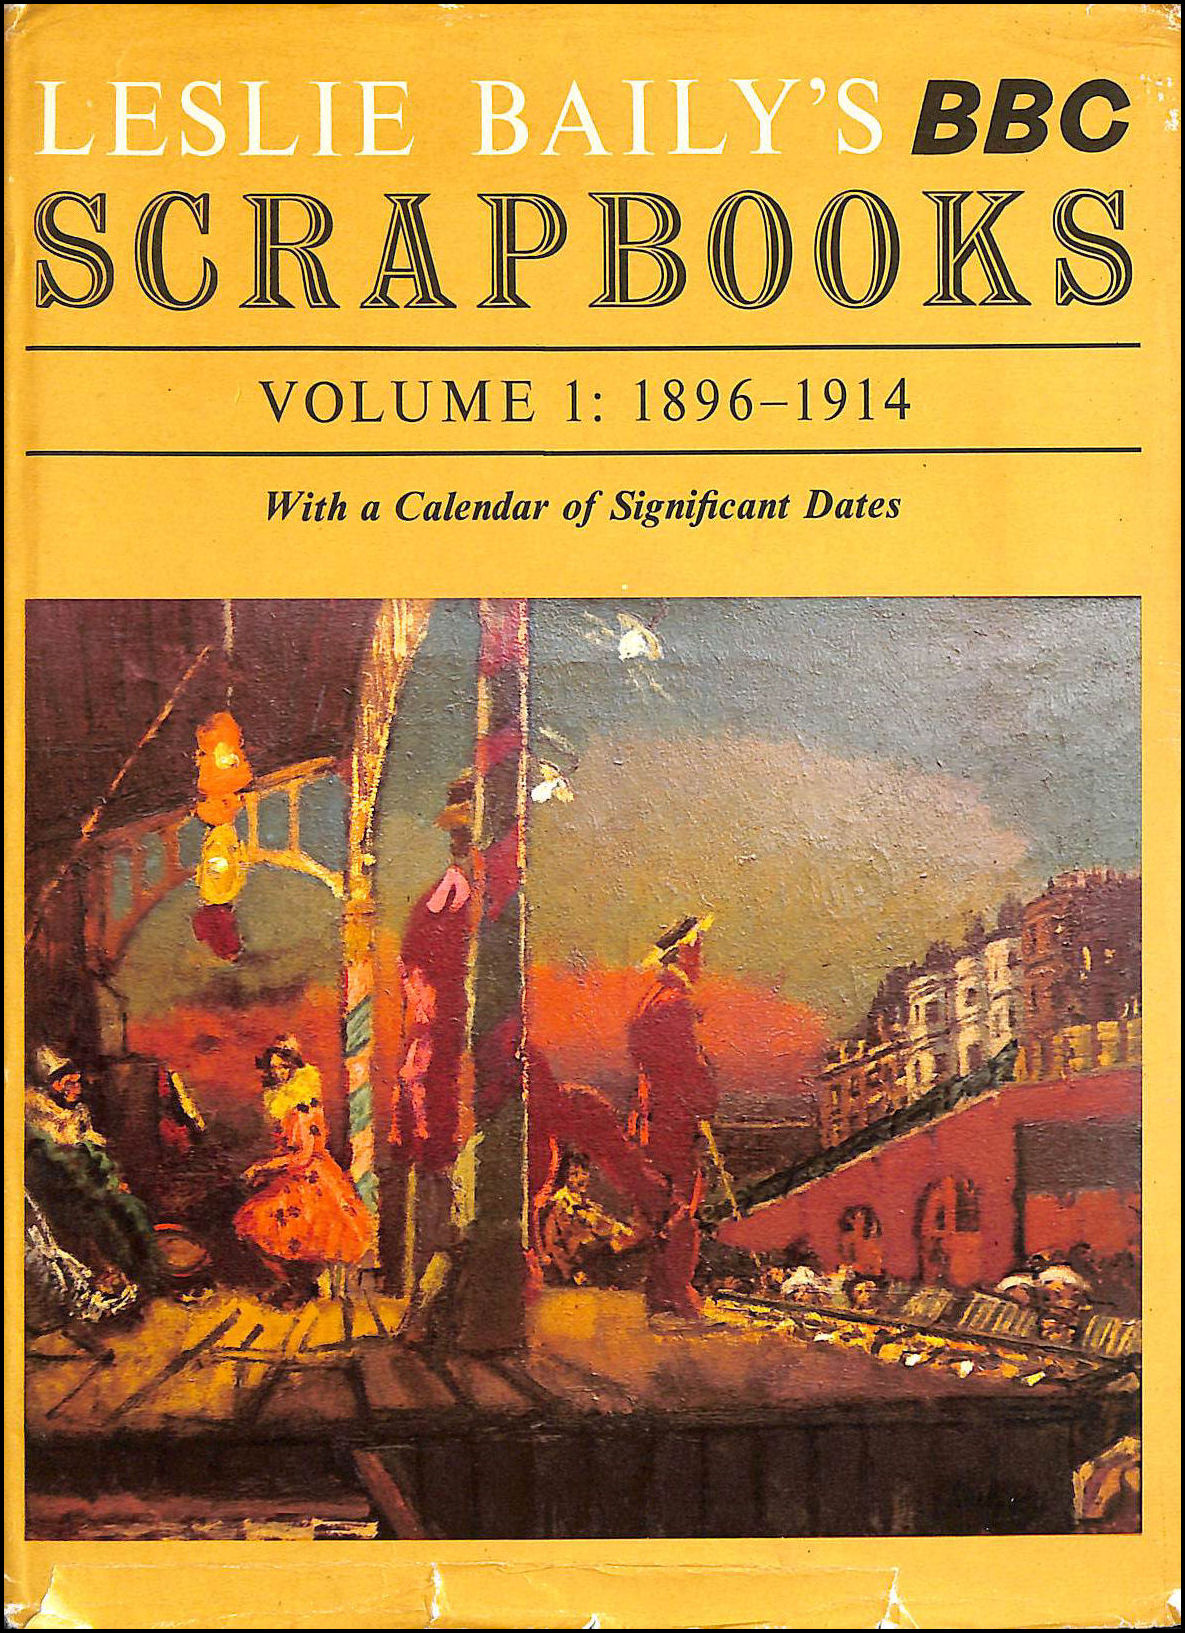 Image for Leslie Baily's BBC Scrapbooks Vol. 1. 1896-1914 With A Calendar Of Significant Dates